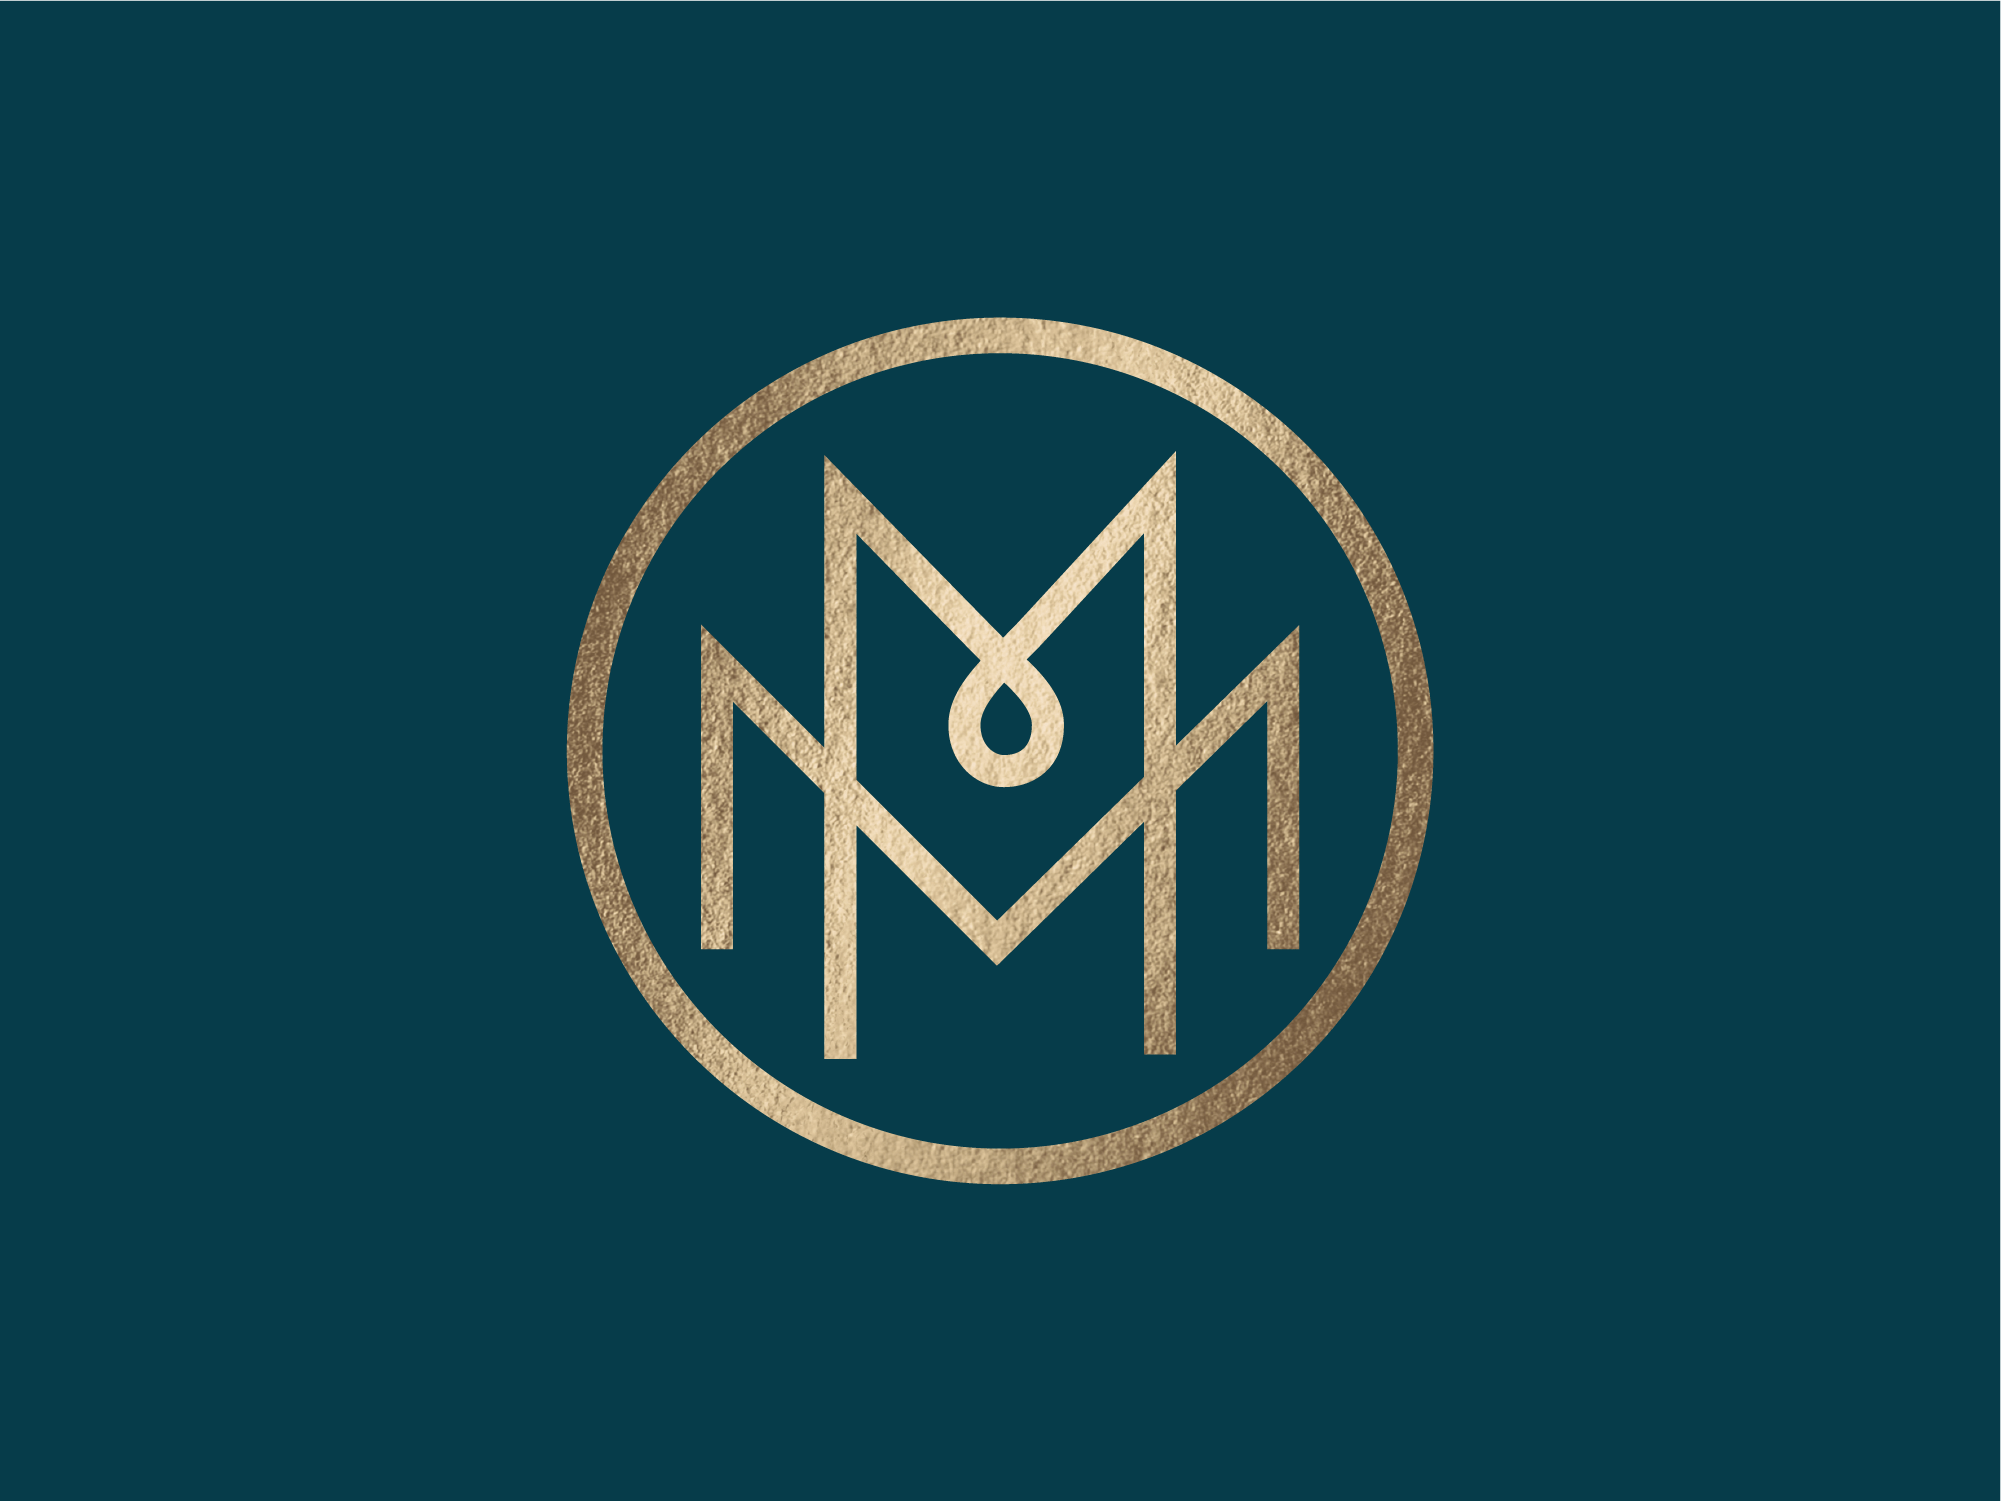 MM_Secondary_Logo-01.png